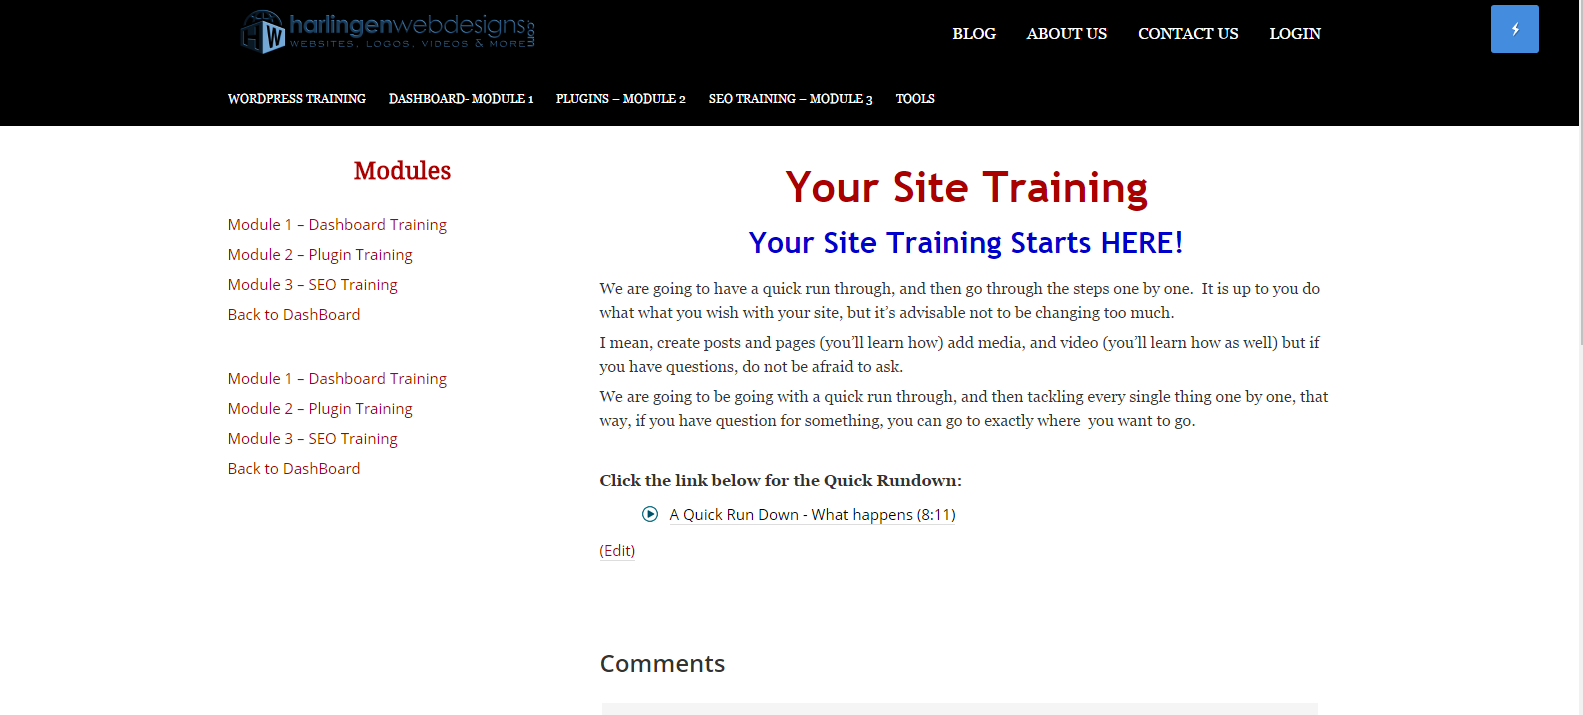 Website Editing and Training